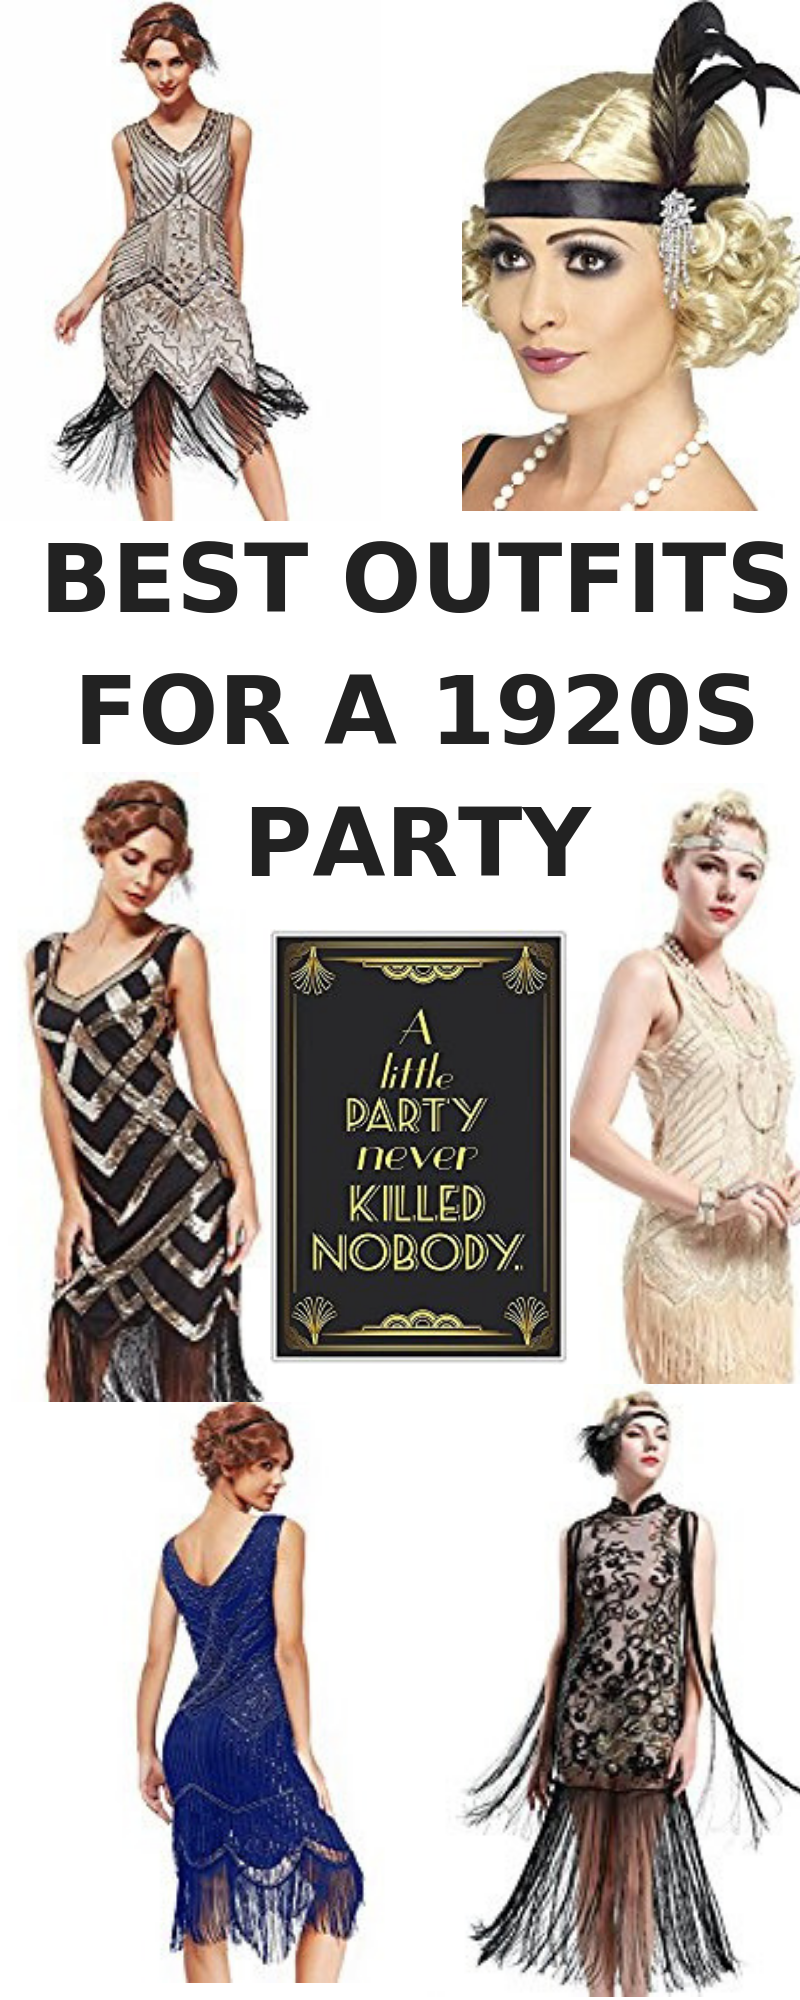 1920s Style Party What To Wear My Cup Of Retro Gatsby Party Dress Party Fashion 1920s Outfits [ 2000 x 800 Pixel ]